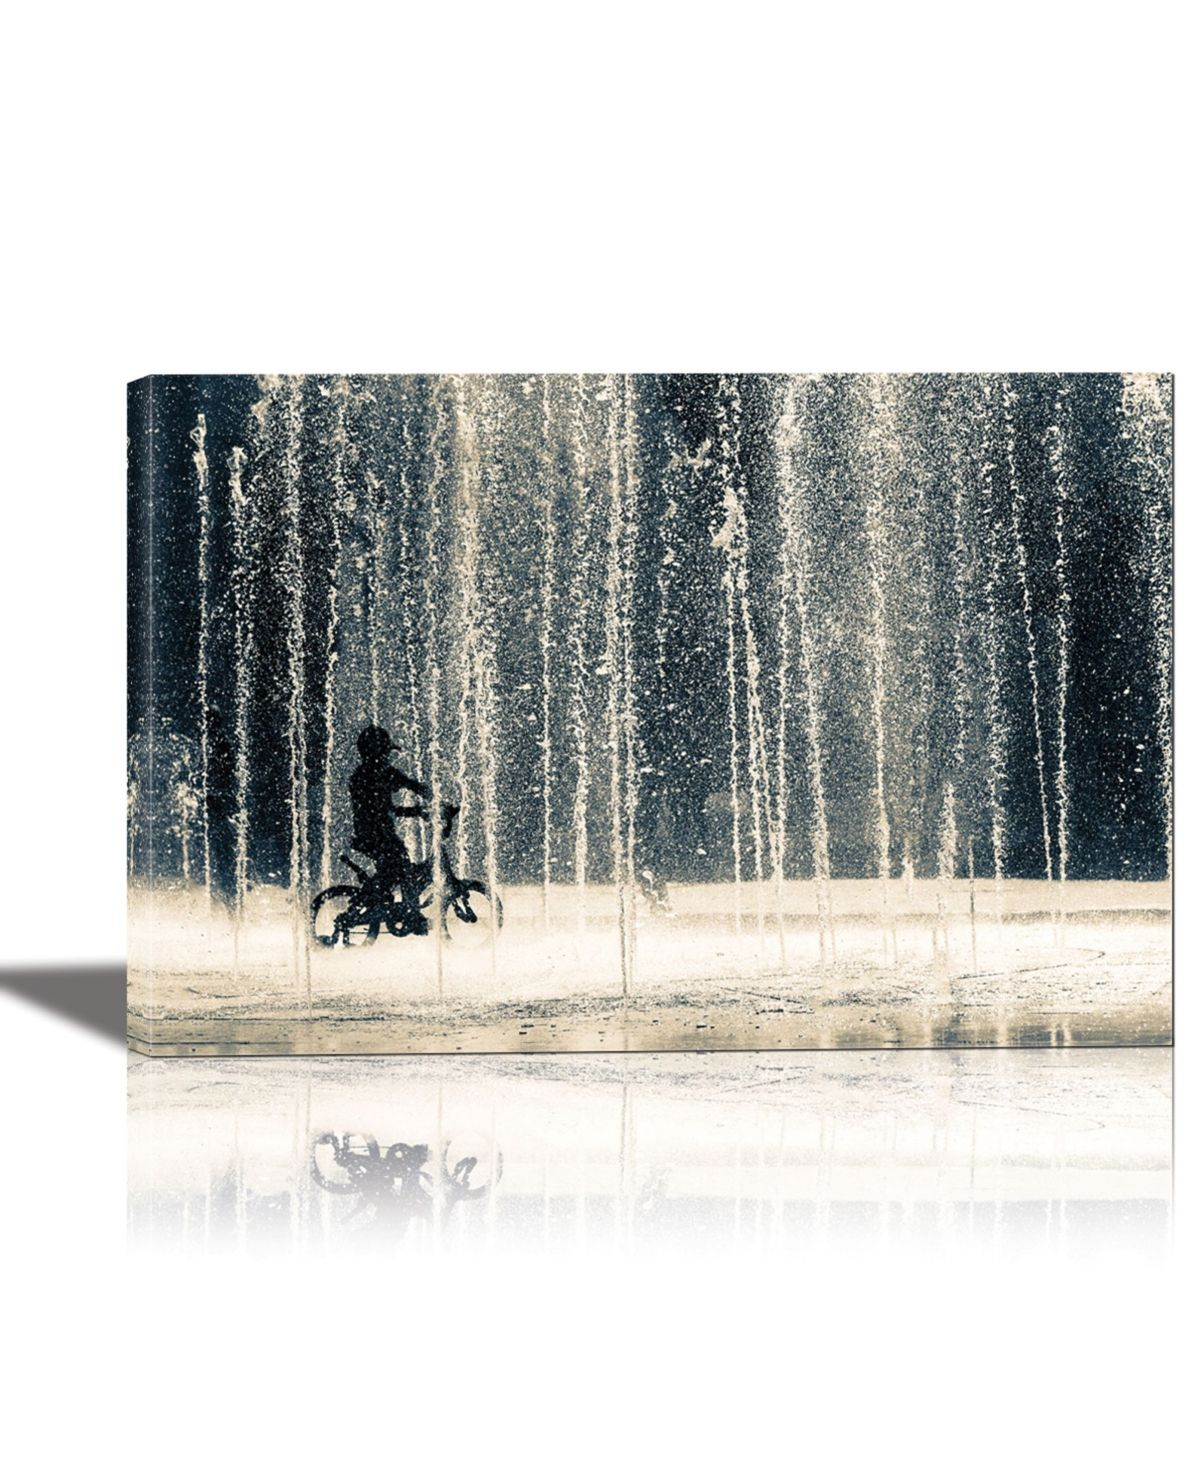 Eurographics Ride Through The Drops Framed Canvas Wall Art Multi Global Gallery Framed Canvas Wall Art Graphic Art Print